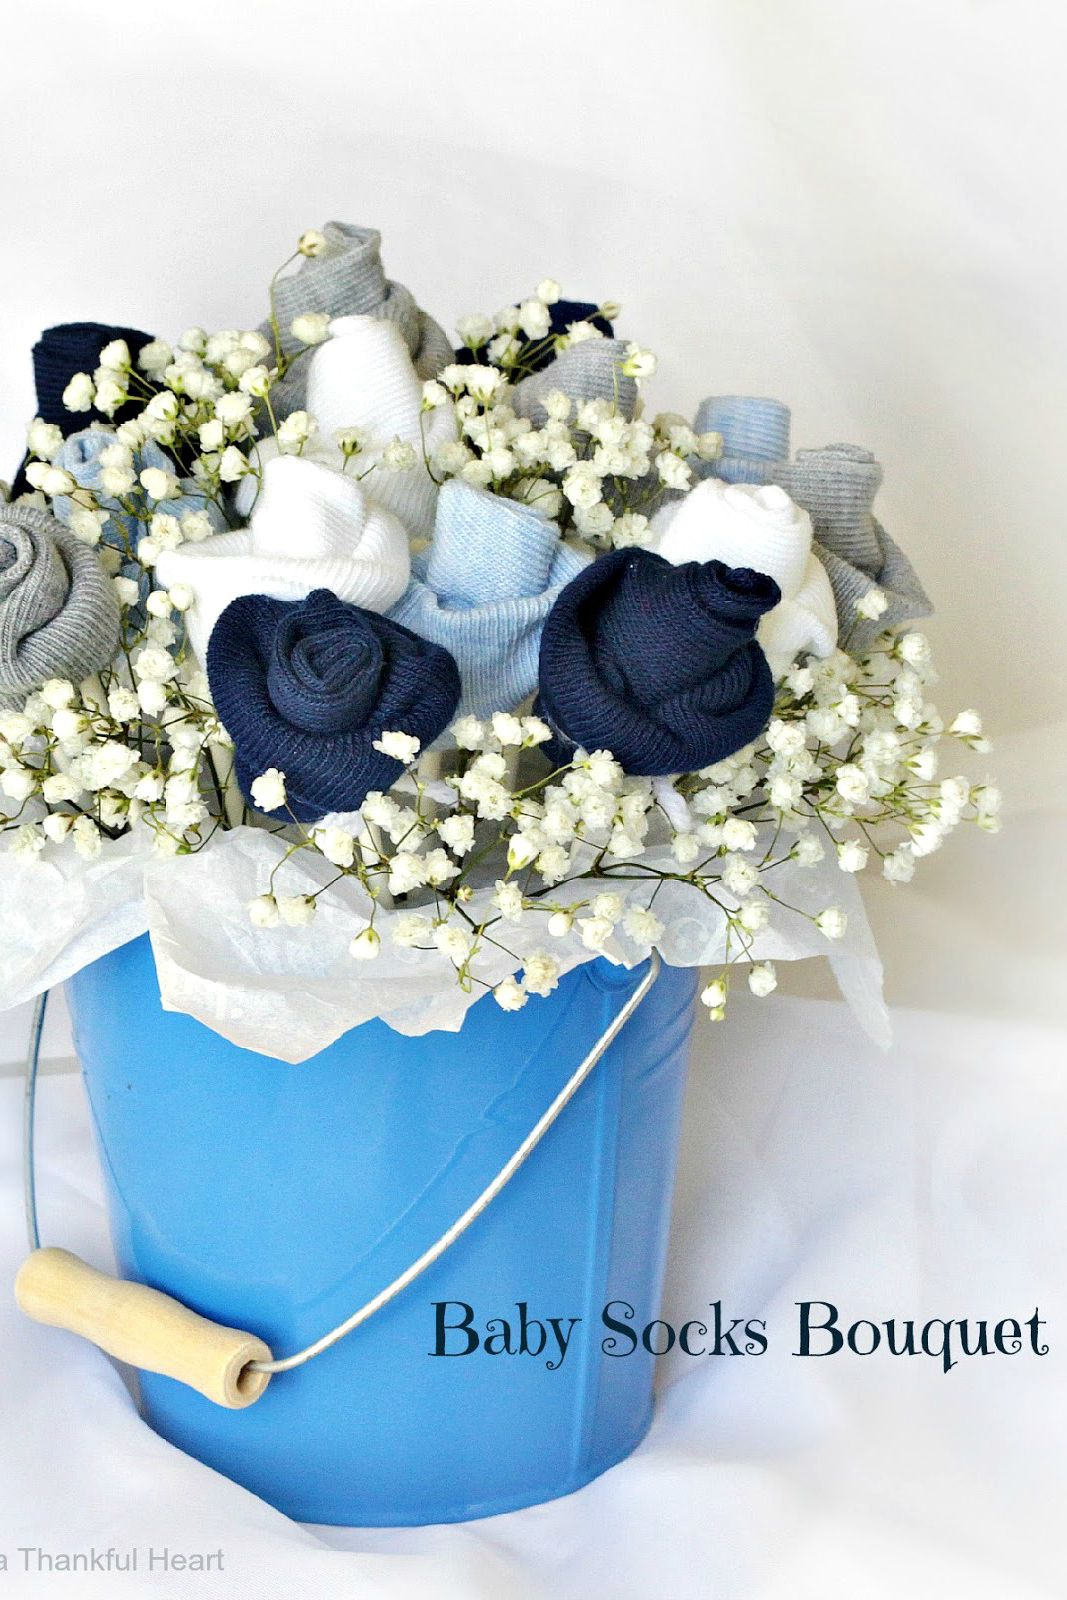 44 Ba Shower Ideas For Boys And Girls Ba Shower Food And in Backyard Baby Shower Ideas